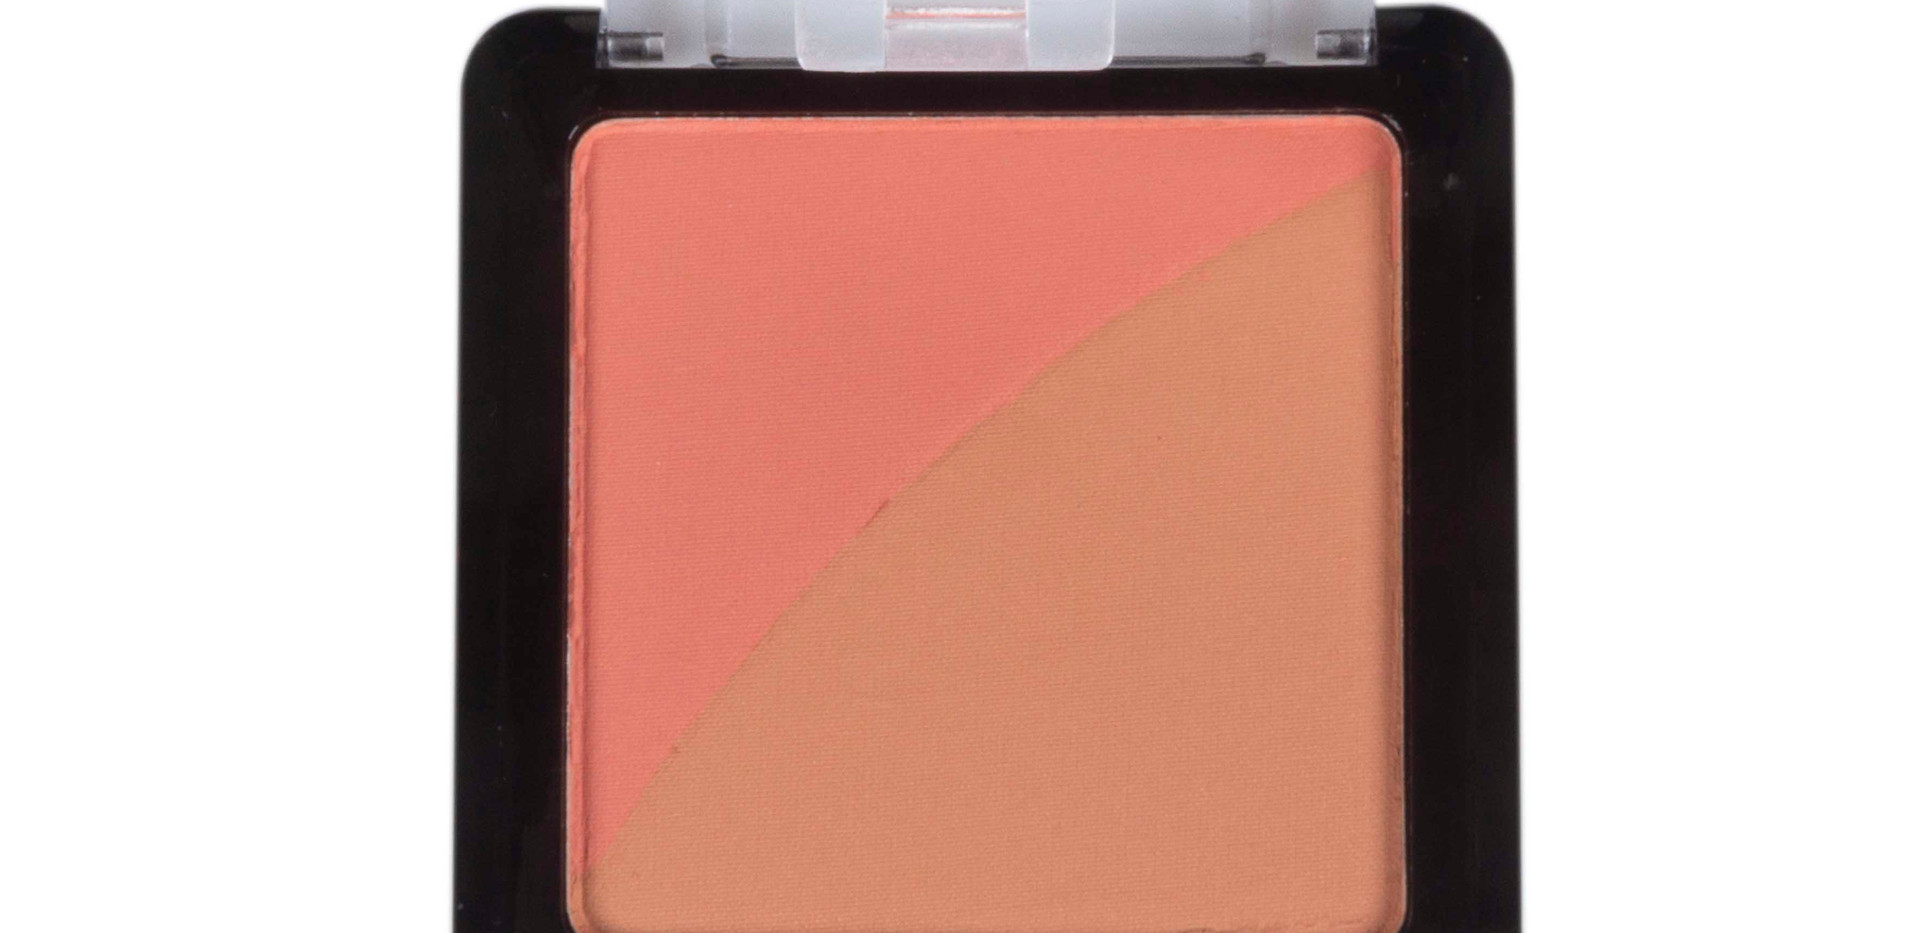 Blush Duo Natural Blushed Dapop - HB96814 (cor 1)